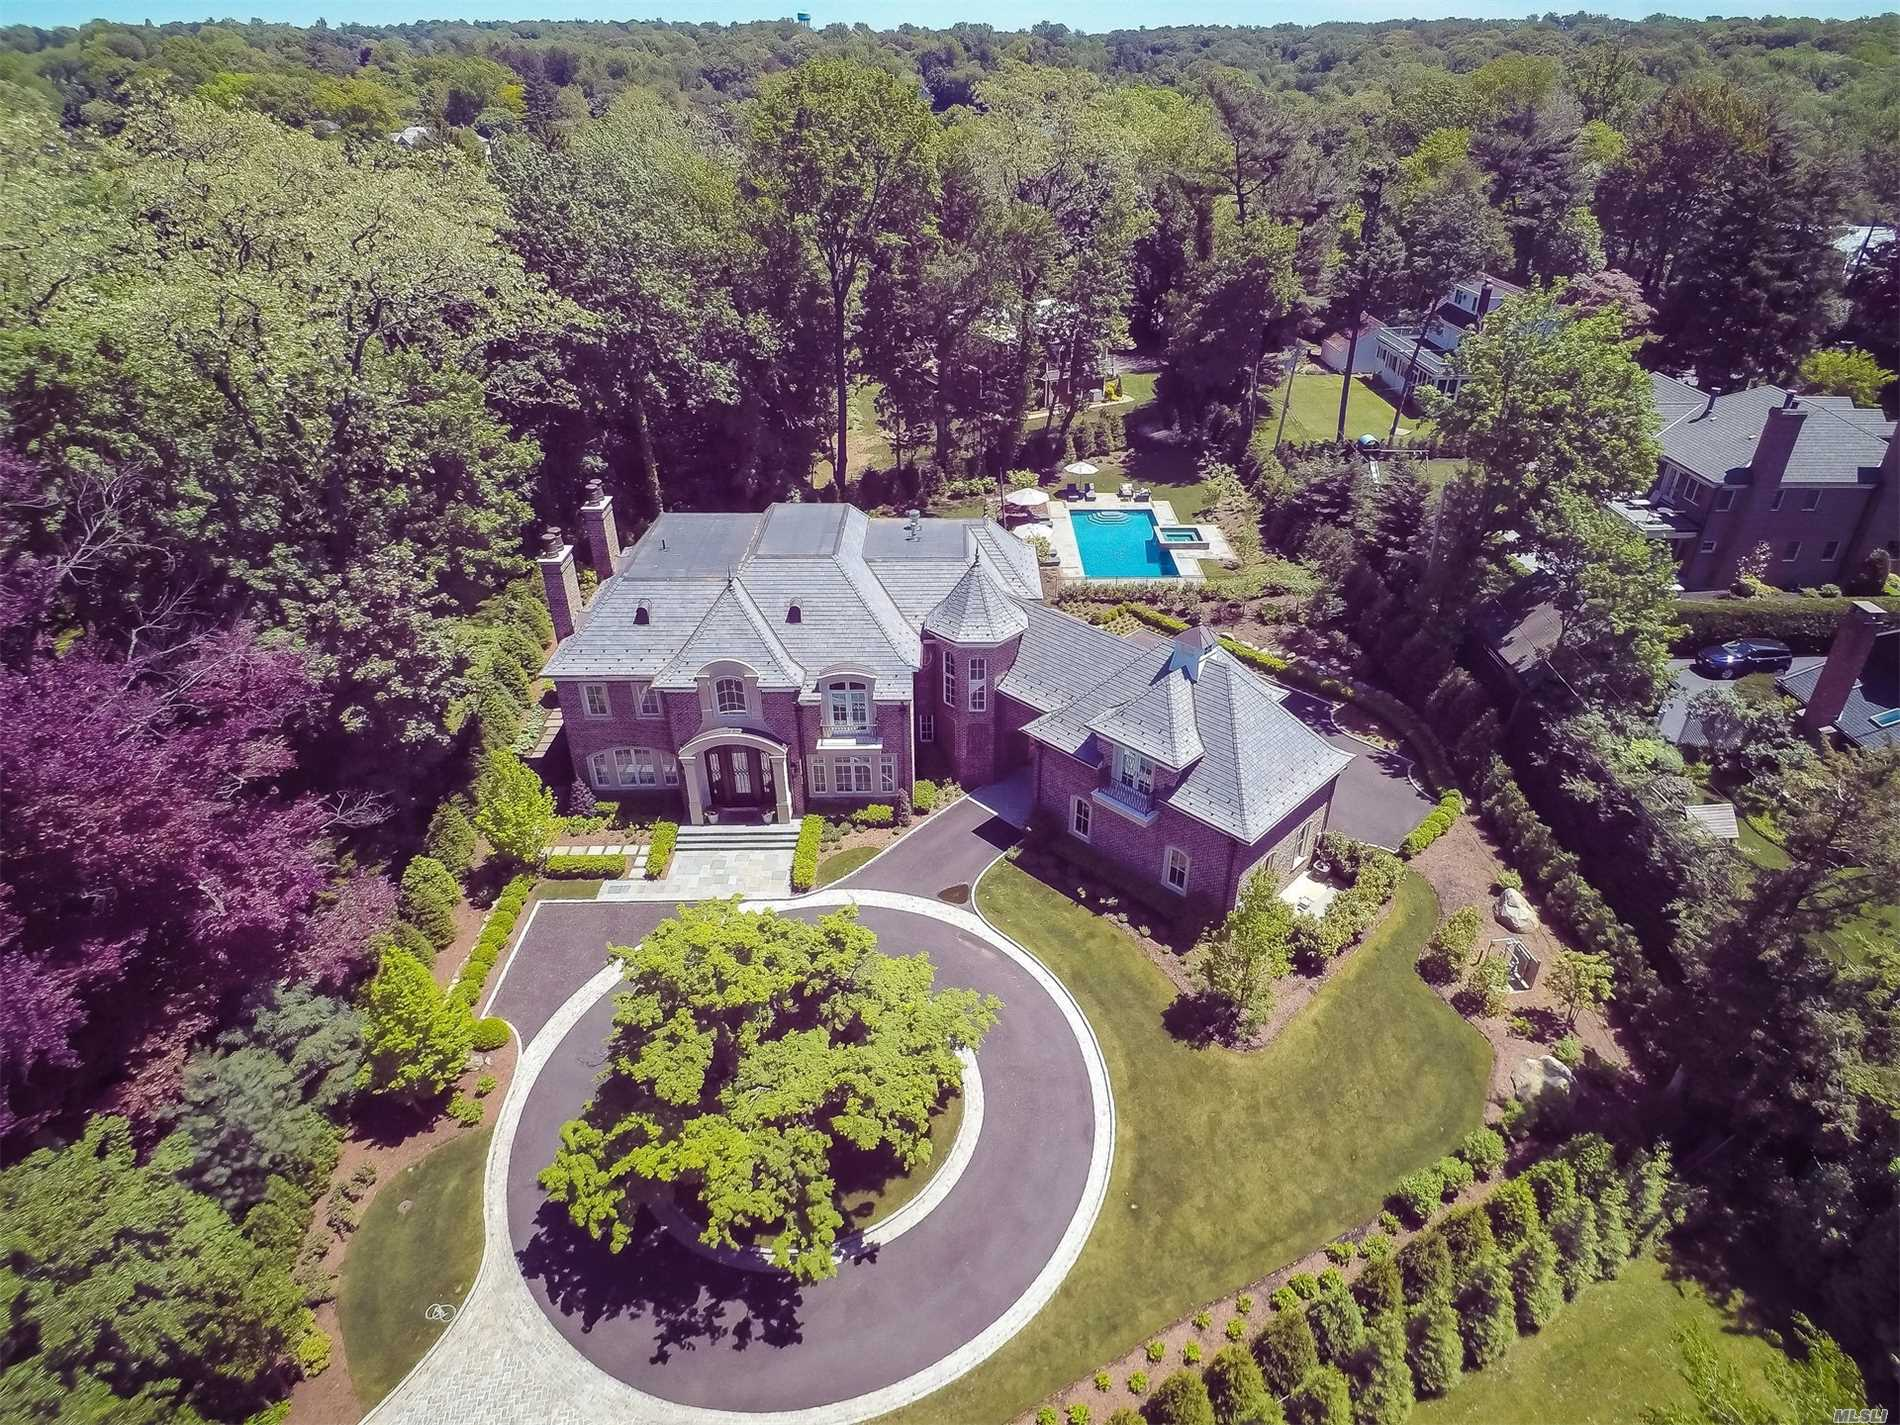 Exquisite French Normandy Custom Built Home Completed In 2017. 6100 Sq. Ft Of Pure Luxury And Tranquility On .8 Acres With Gunite Salt Water Pool & Waterfall Spa. Landscape Design By The Laurel Group Features Year Round Flowering Specimen Plantings, Outdoor Kitchen With Built In Bbq And Rotisserie, And Gas Fire Pit. Three Car Heated Garage And Circular Driveway. 60Kw Whole House Generator. Sonos Sound And Lutron Programmable Lighting Throughout Entire House.